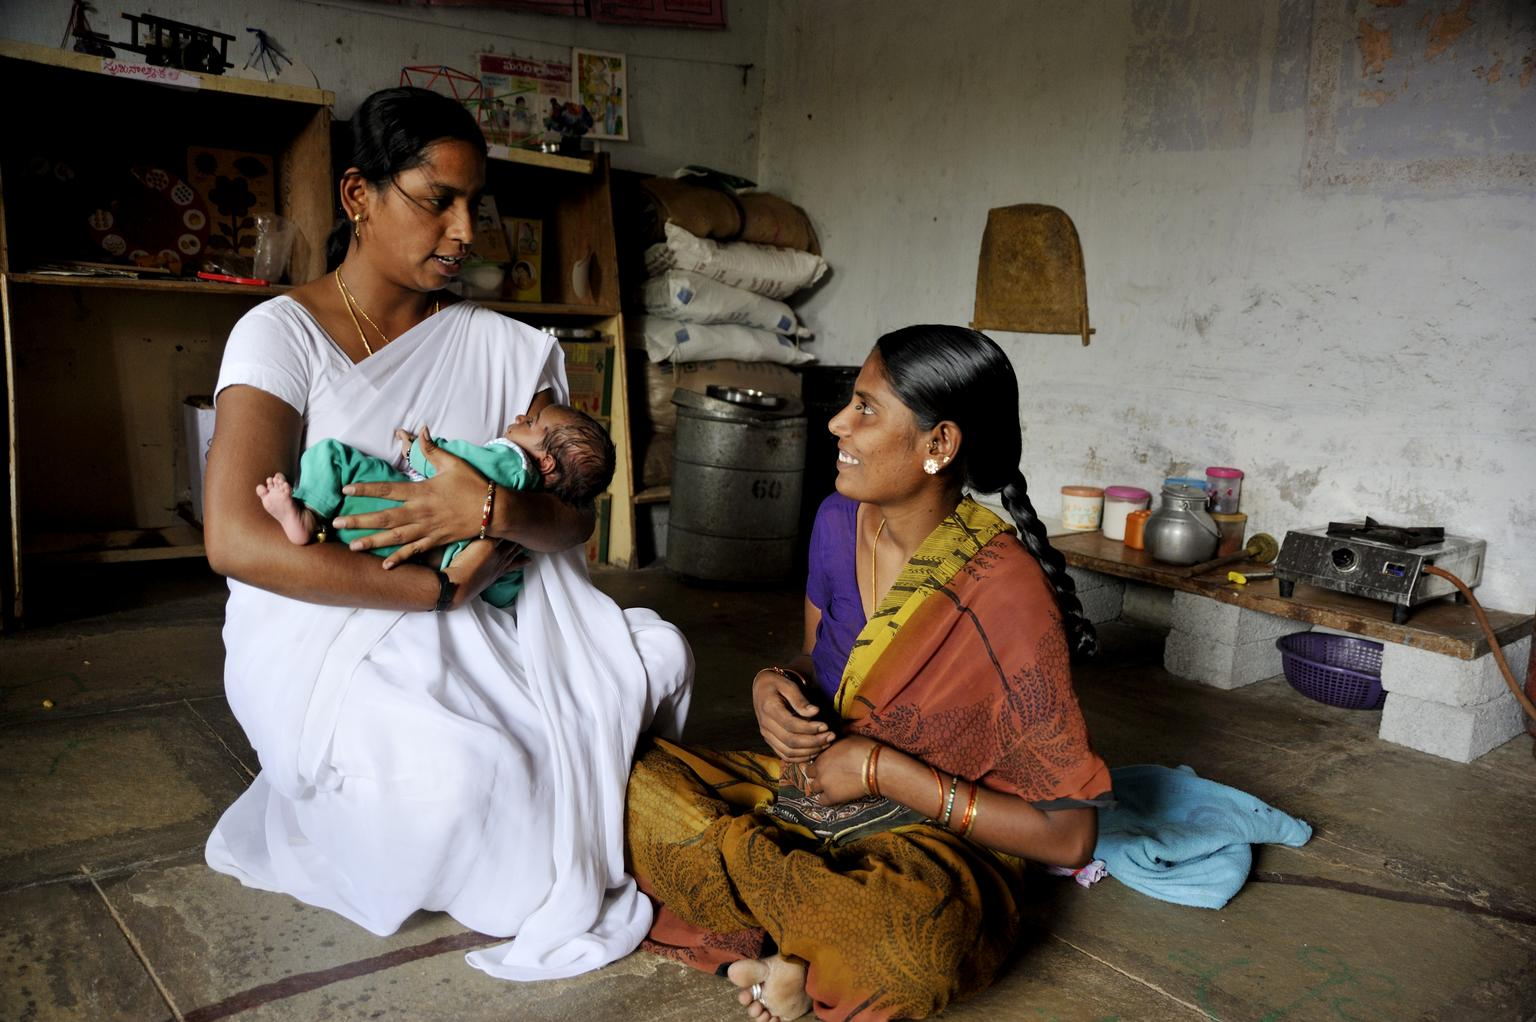 In India, at the Anganwadi Centre, a local Auxillary Nurse Midwife (ANM) trains young mothers who are lactating on the correct technique of breast feeding.